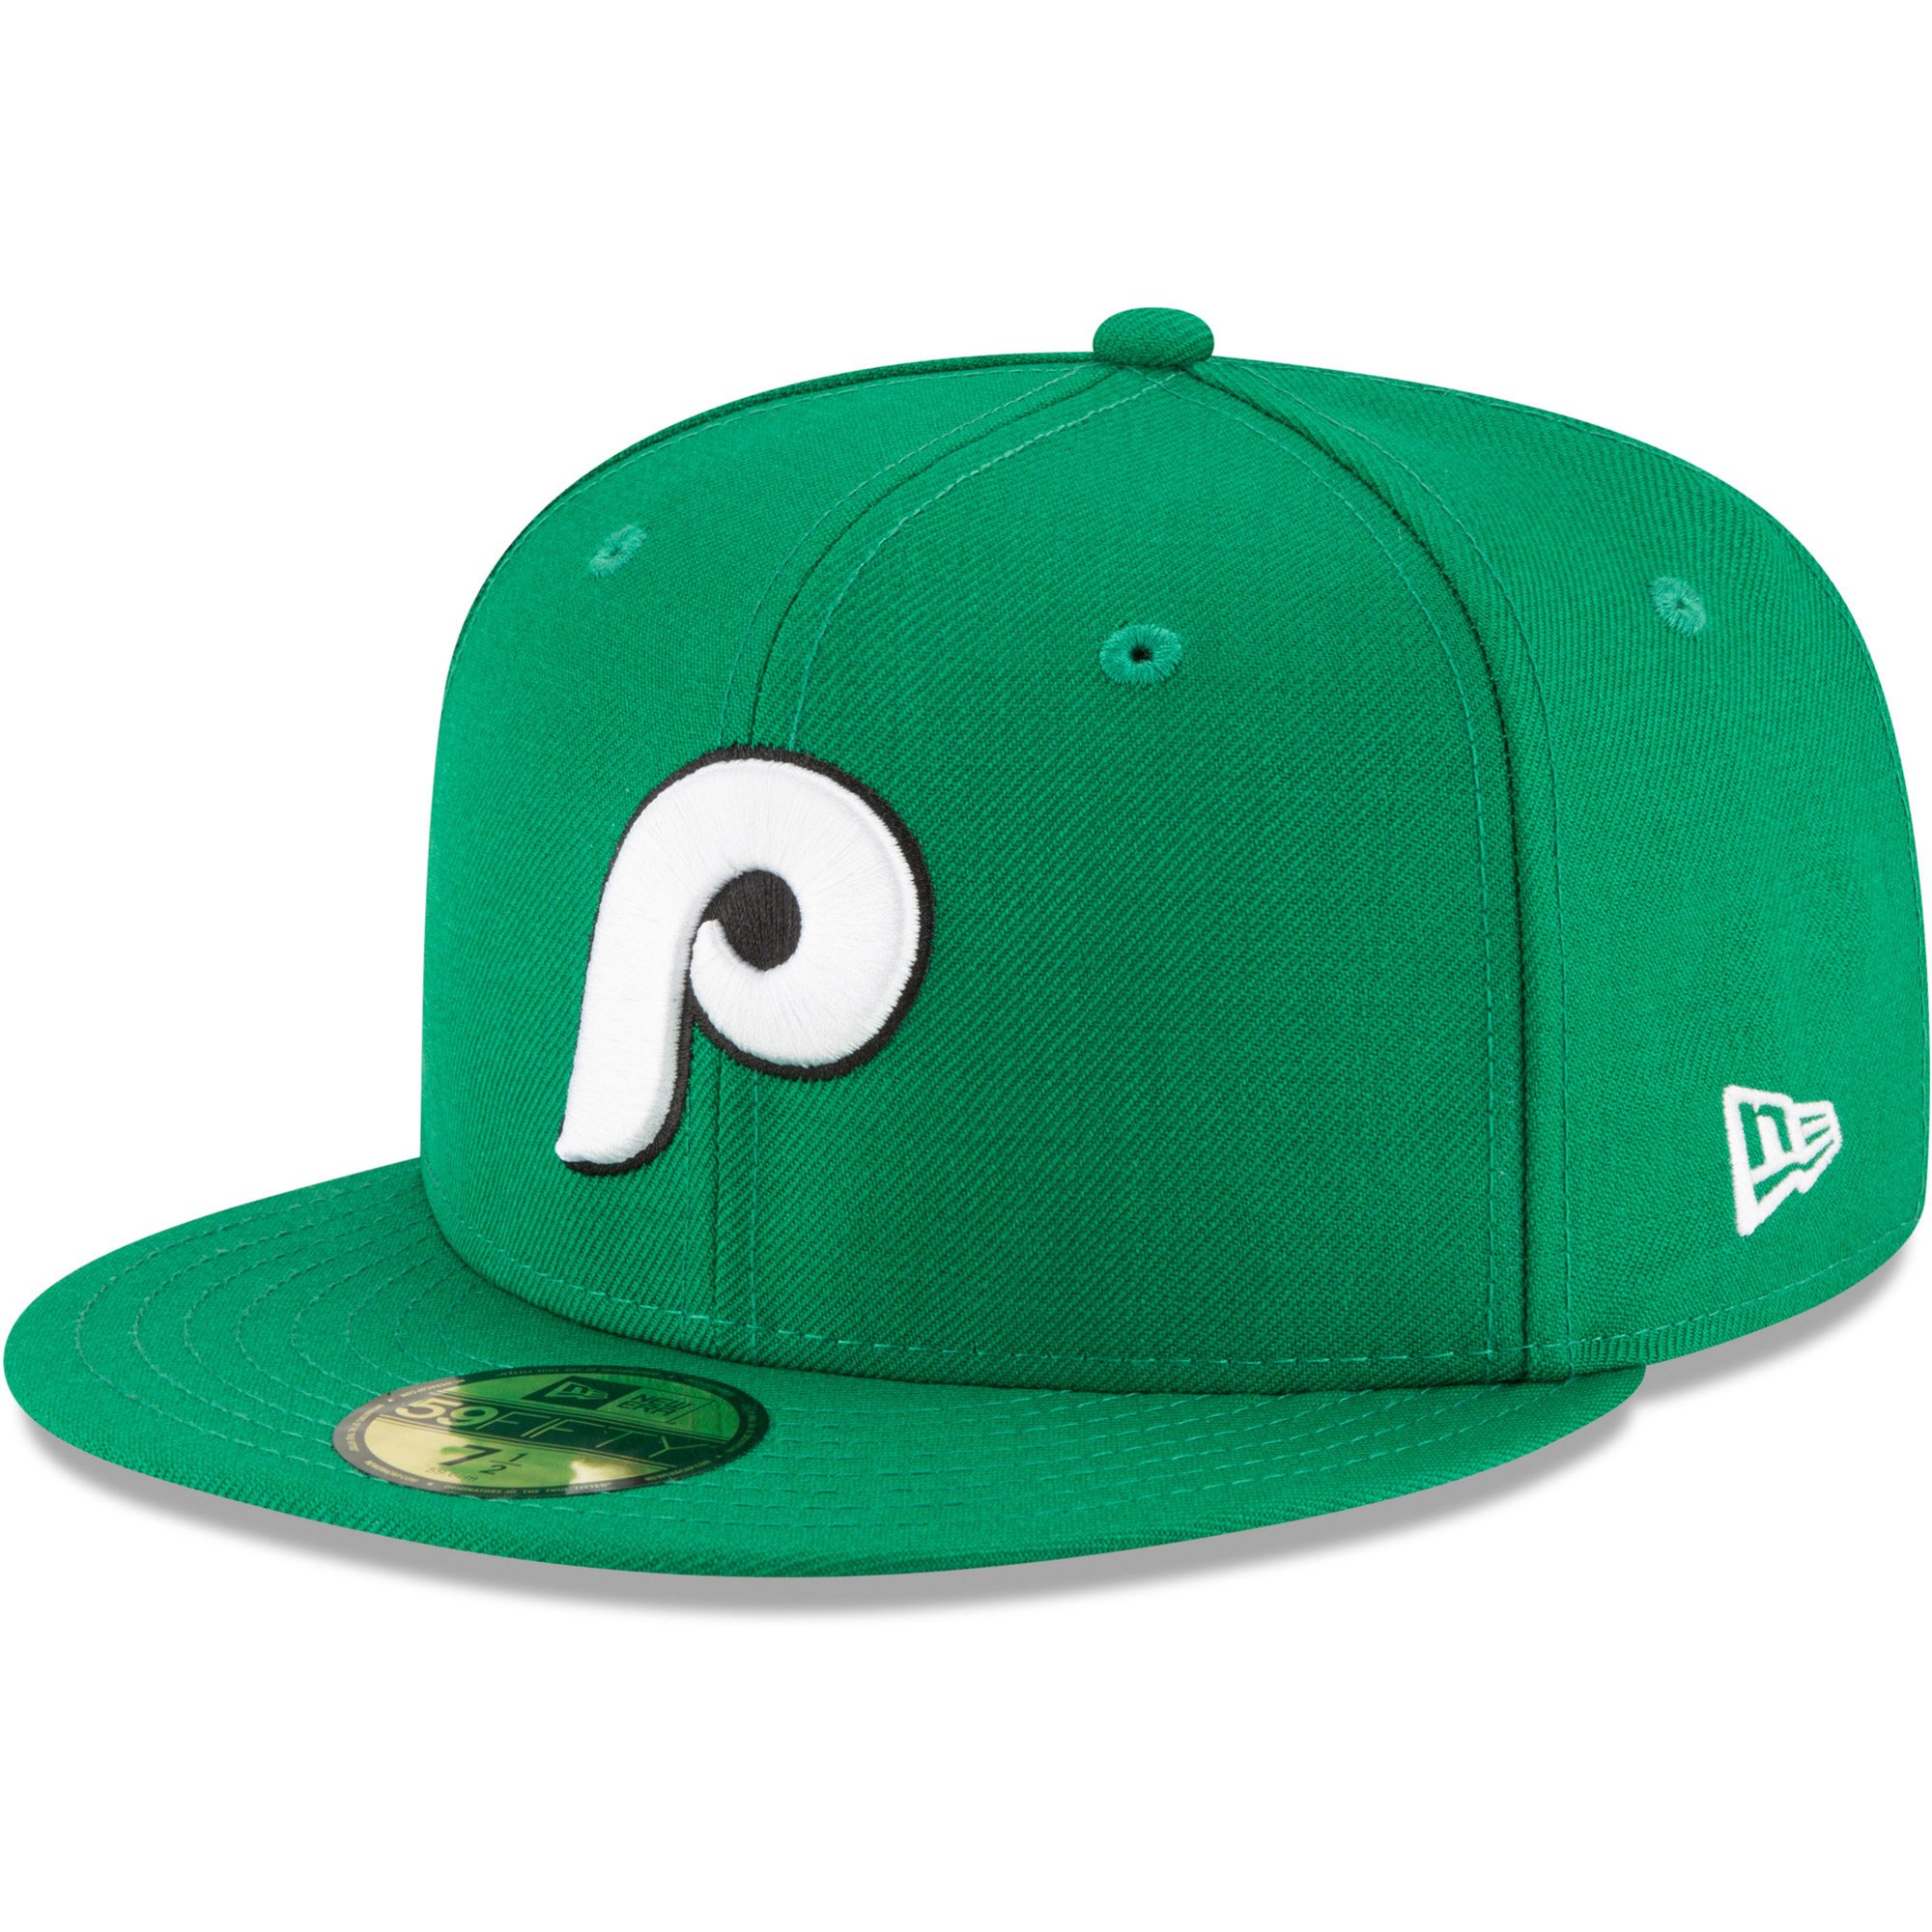 Philadelphia Phillies New Era Crossover 59FIFTY Fitted Hat - Kelly Green